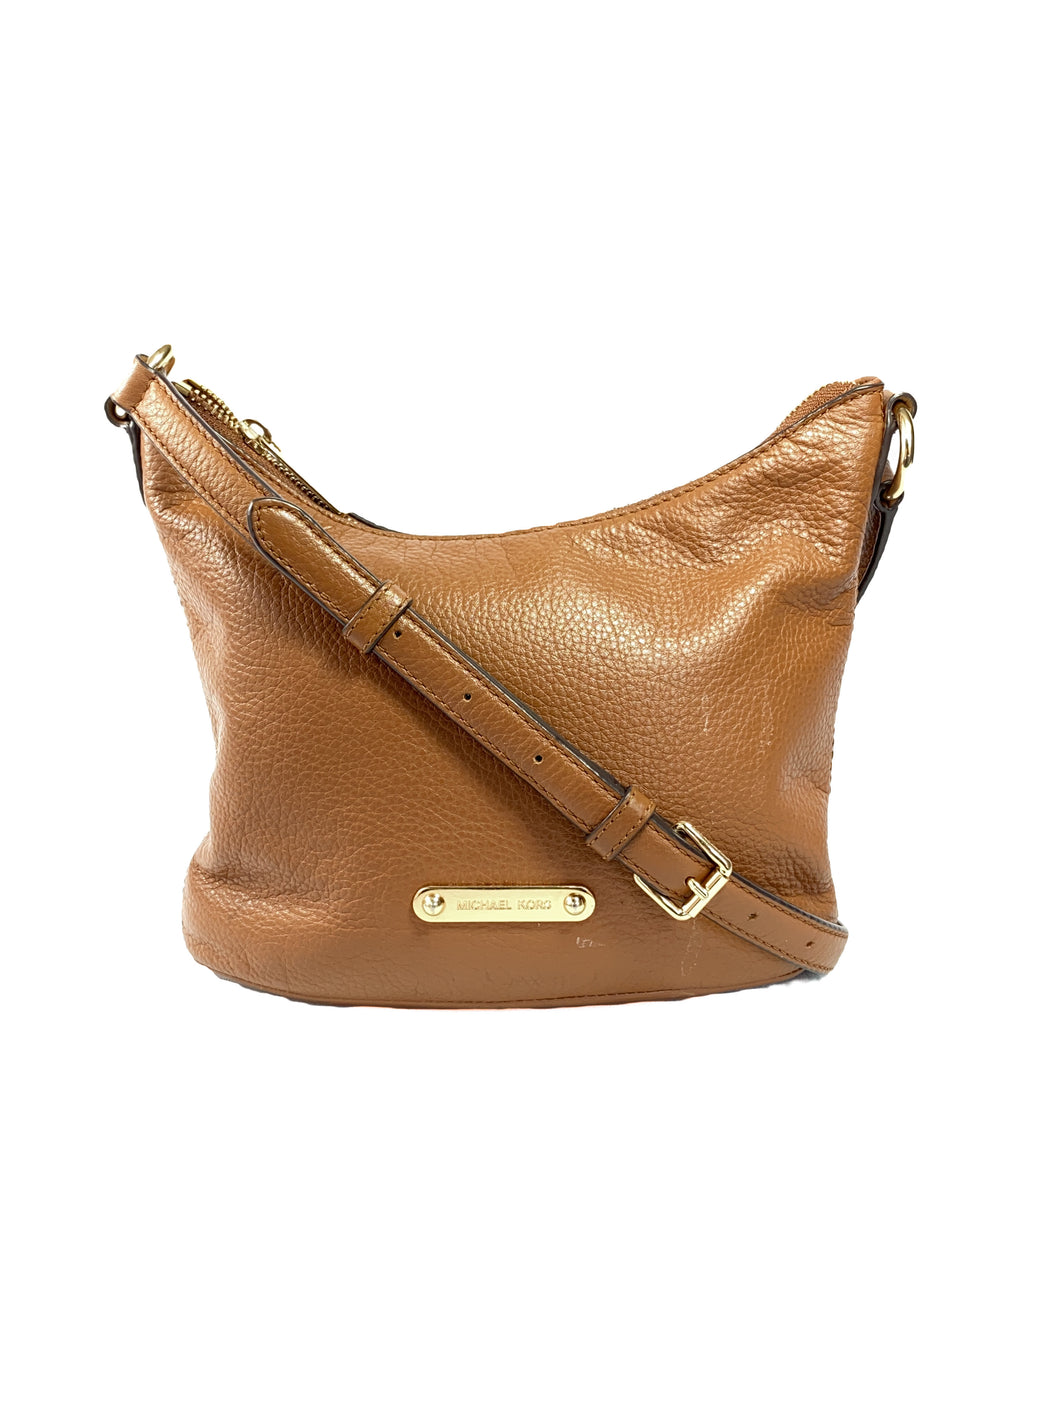 Michael Kors brown leather crossbody